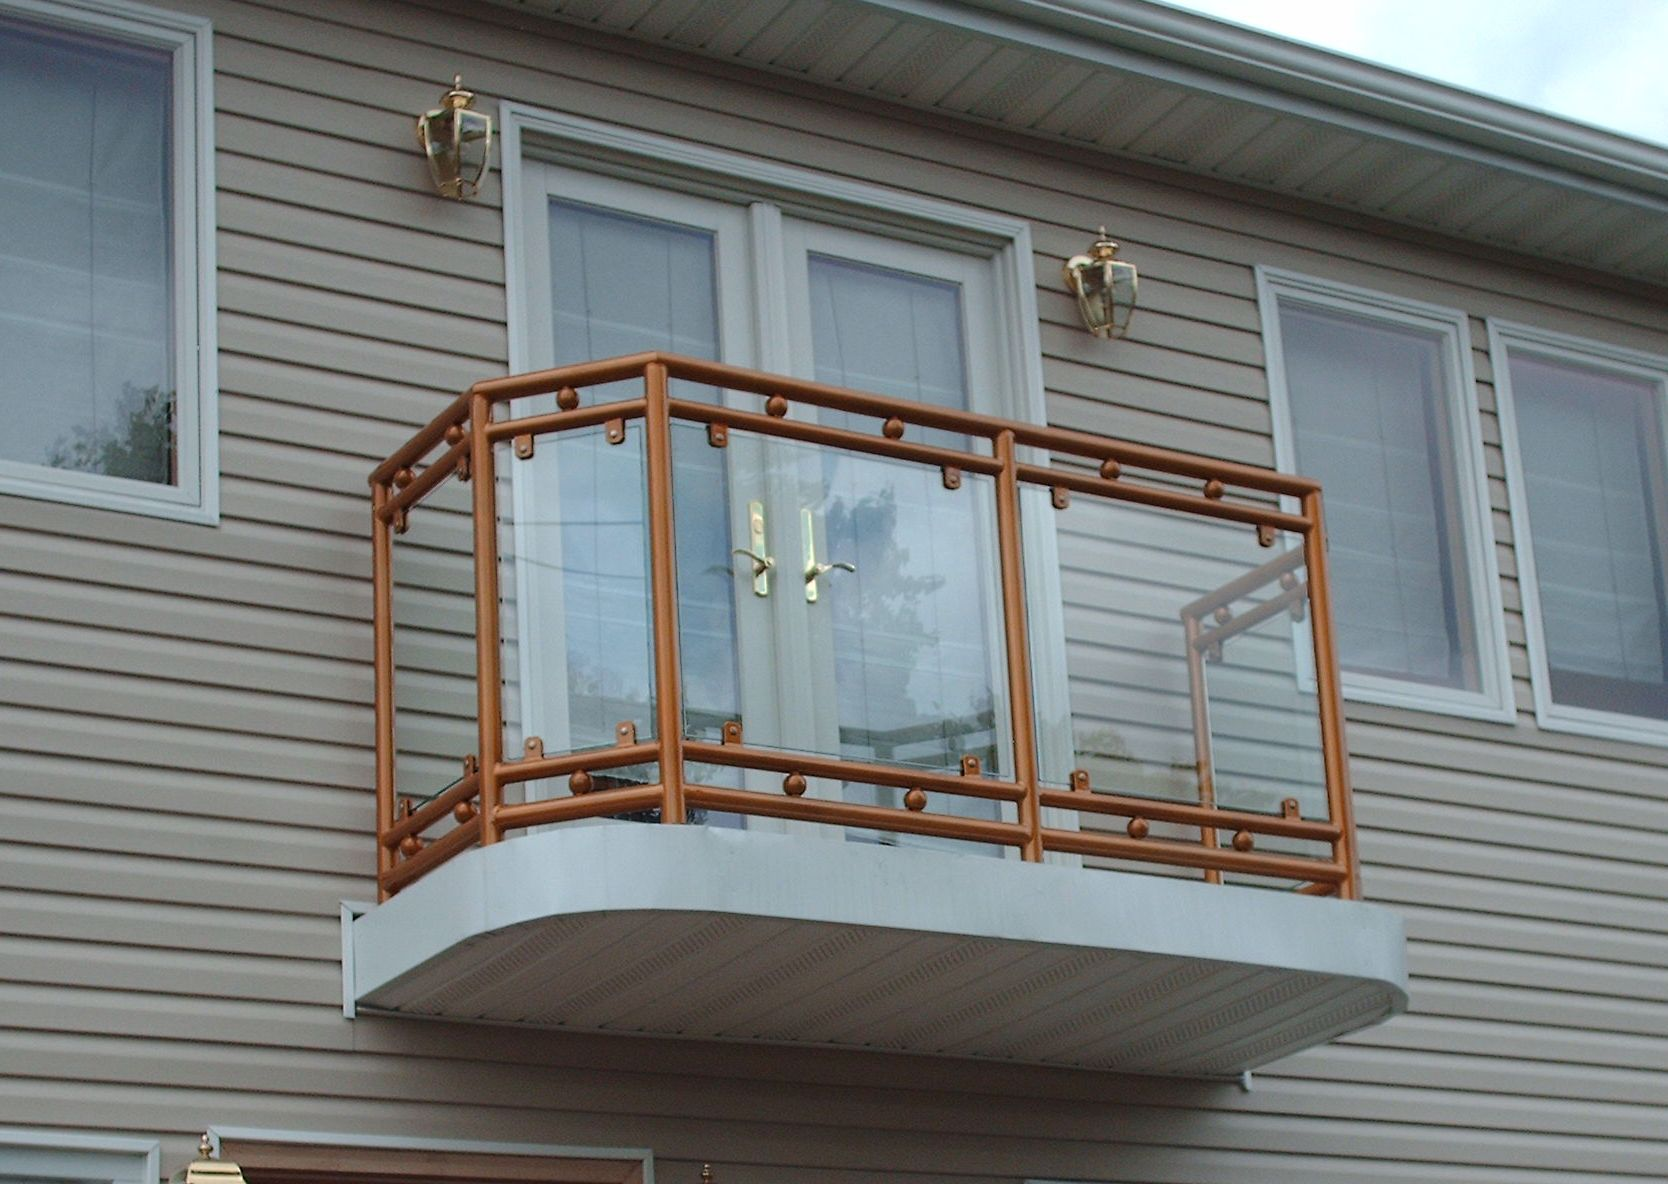 Guardian gate balcony balconies pinterest balcony for Exterior balcony design